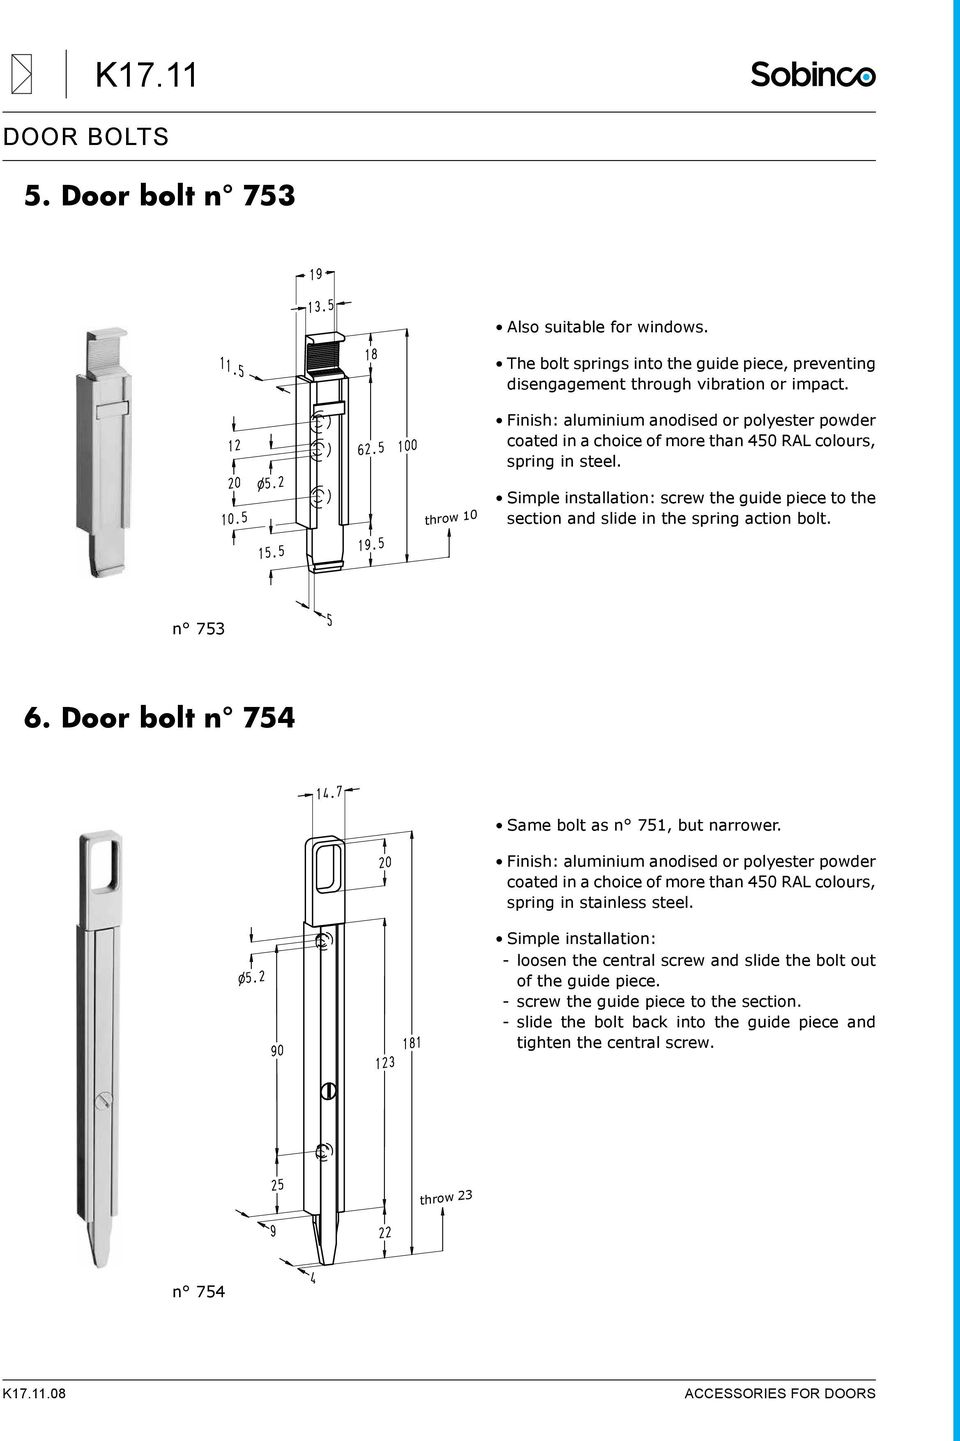 throw 10 Simple installation: screw the guide piece to the section and slide in the spring action bolt. n 753 6. Door bolt n 754 Same bolt as n 751, but narrower.